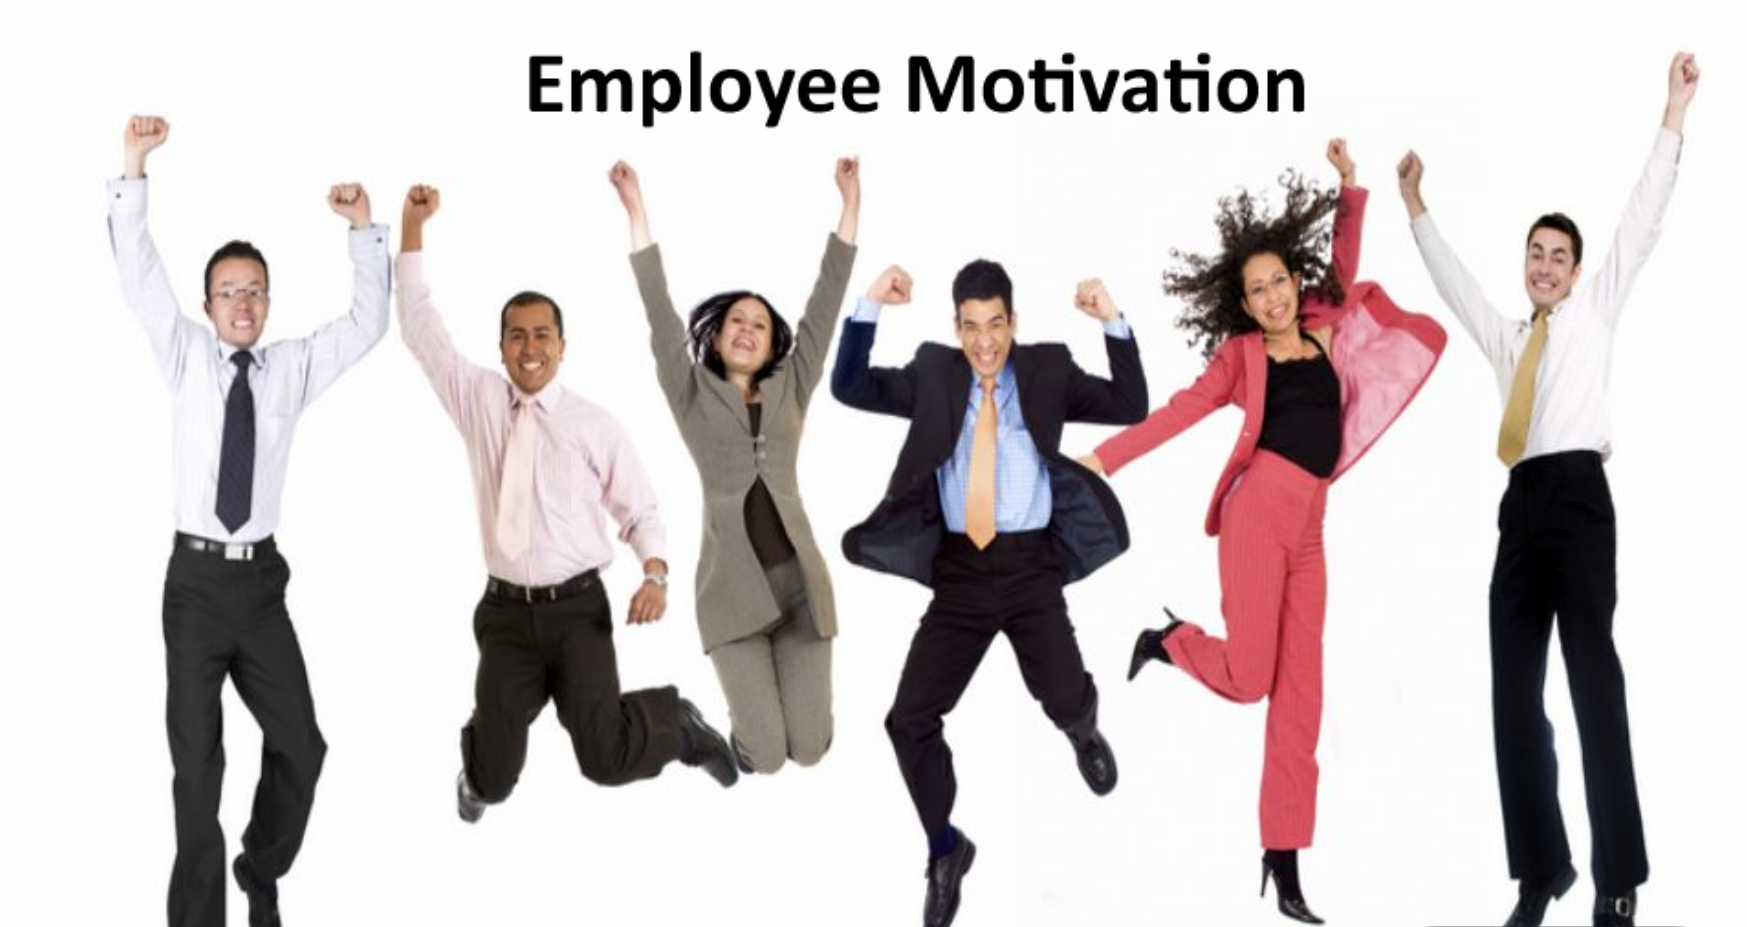 Employee Motivation